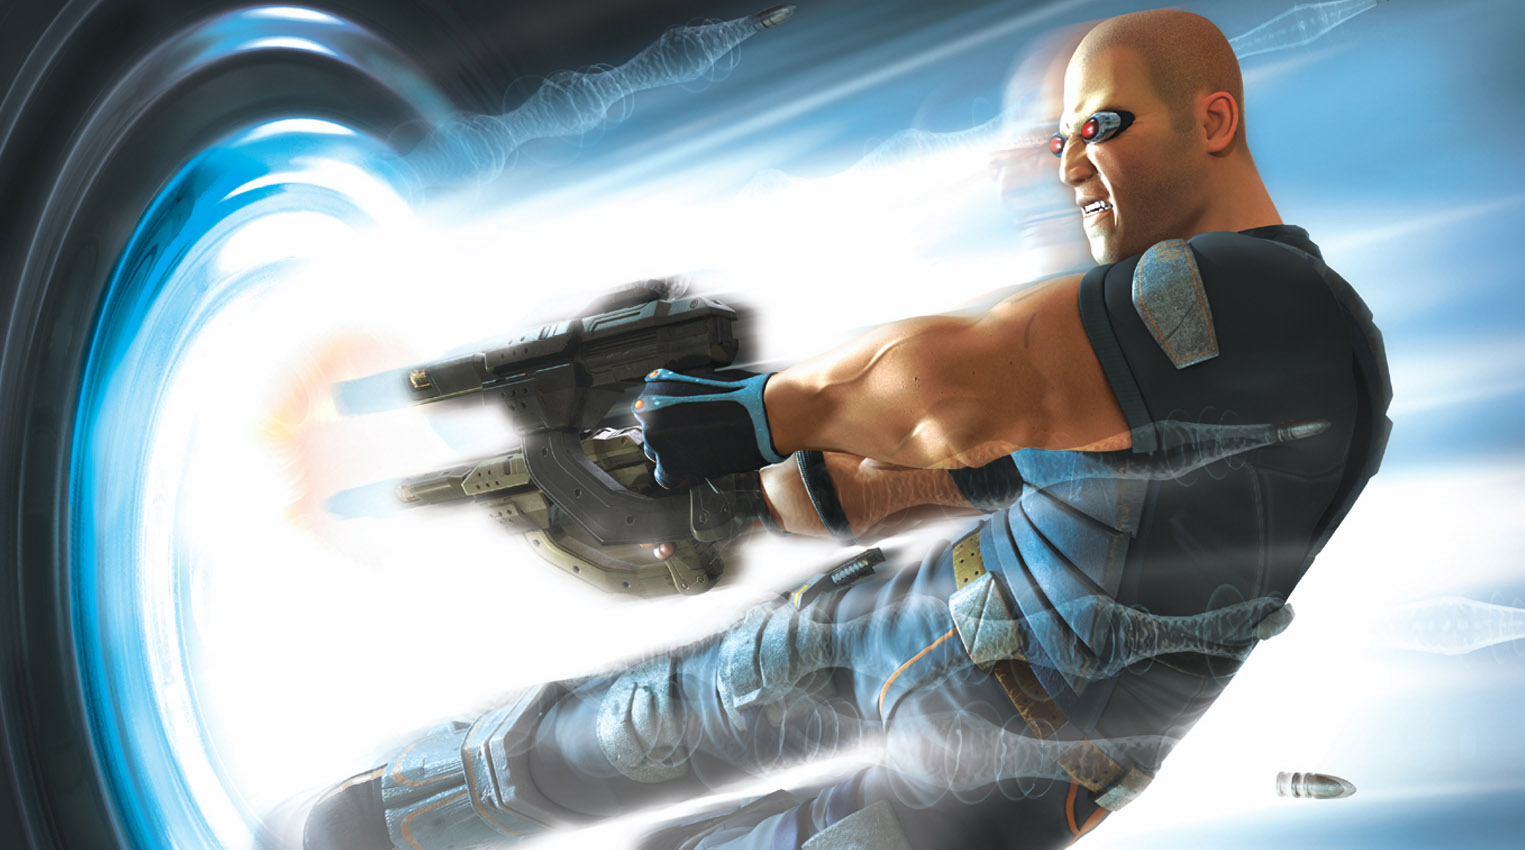 TimeSplitters 4 5 Video Game Franchises We Hope To See Make A Comeback Next Generation